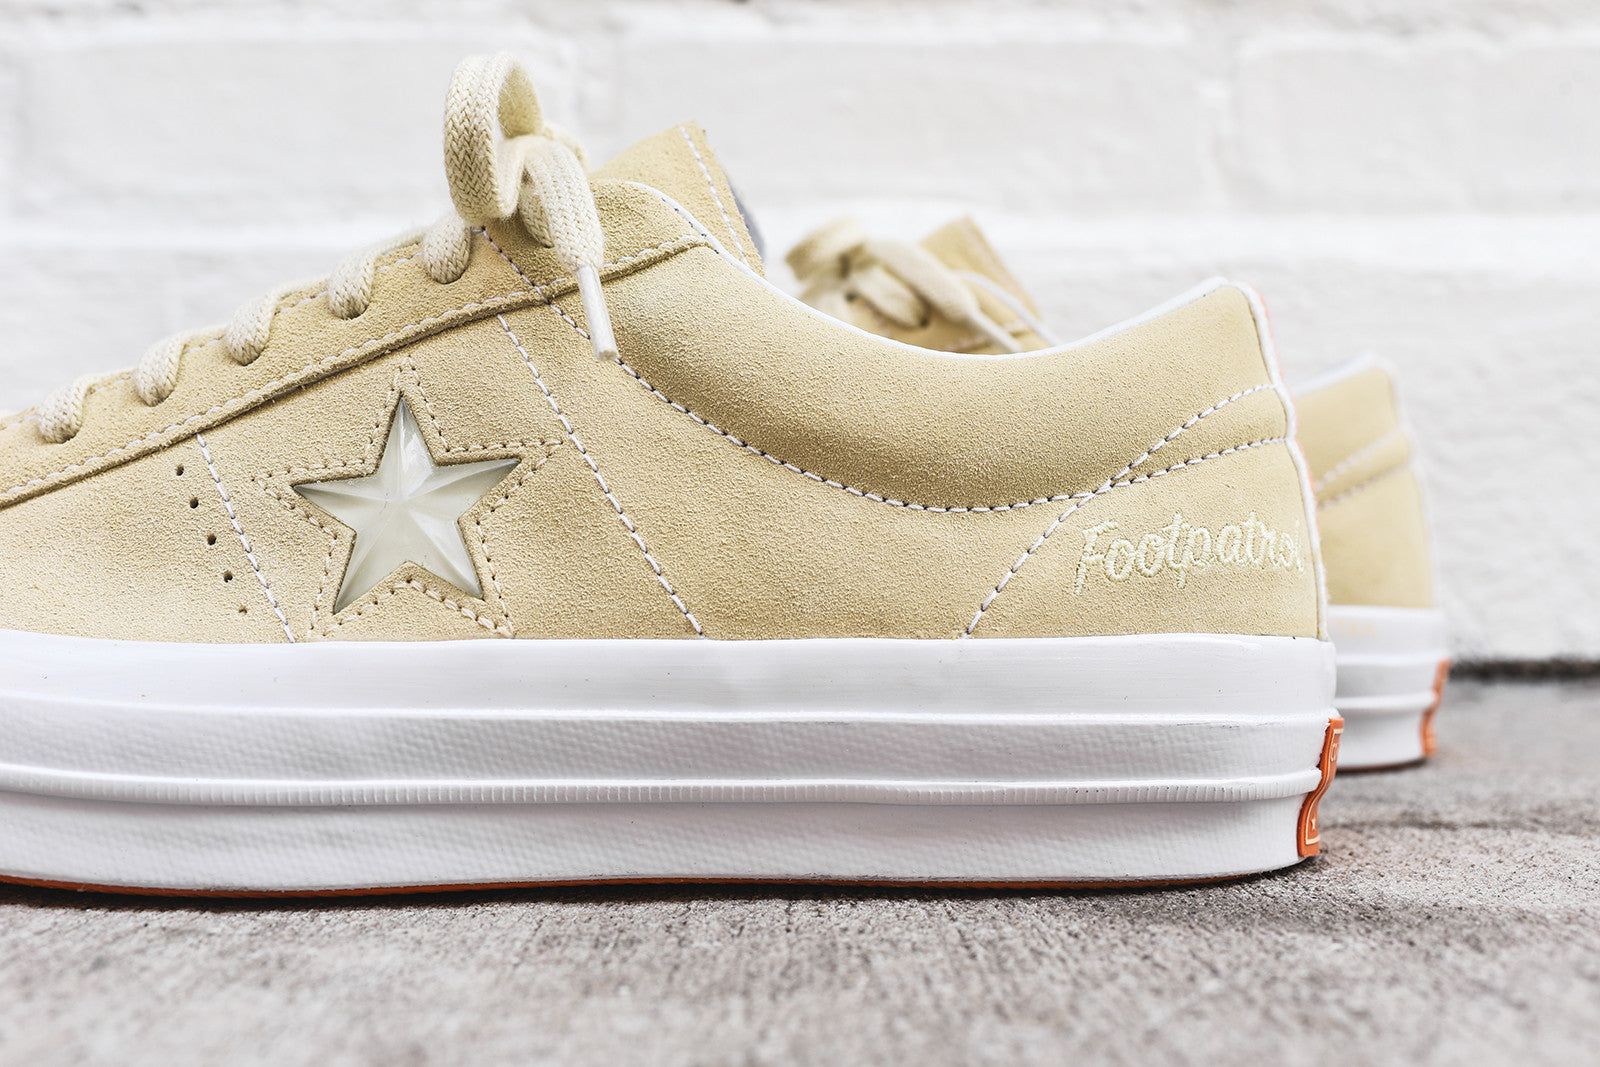 8a3acd53c449 Converse x Footpatrol One Star Ox - Cream   White – Kith